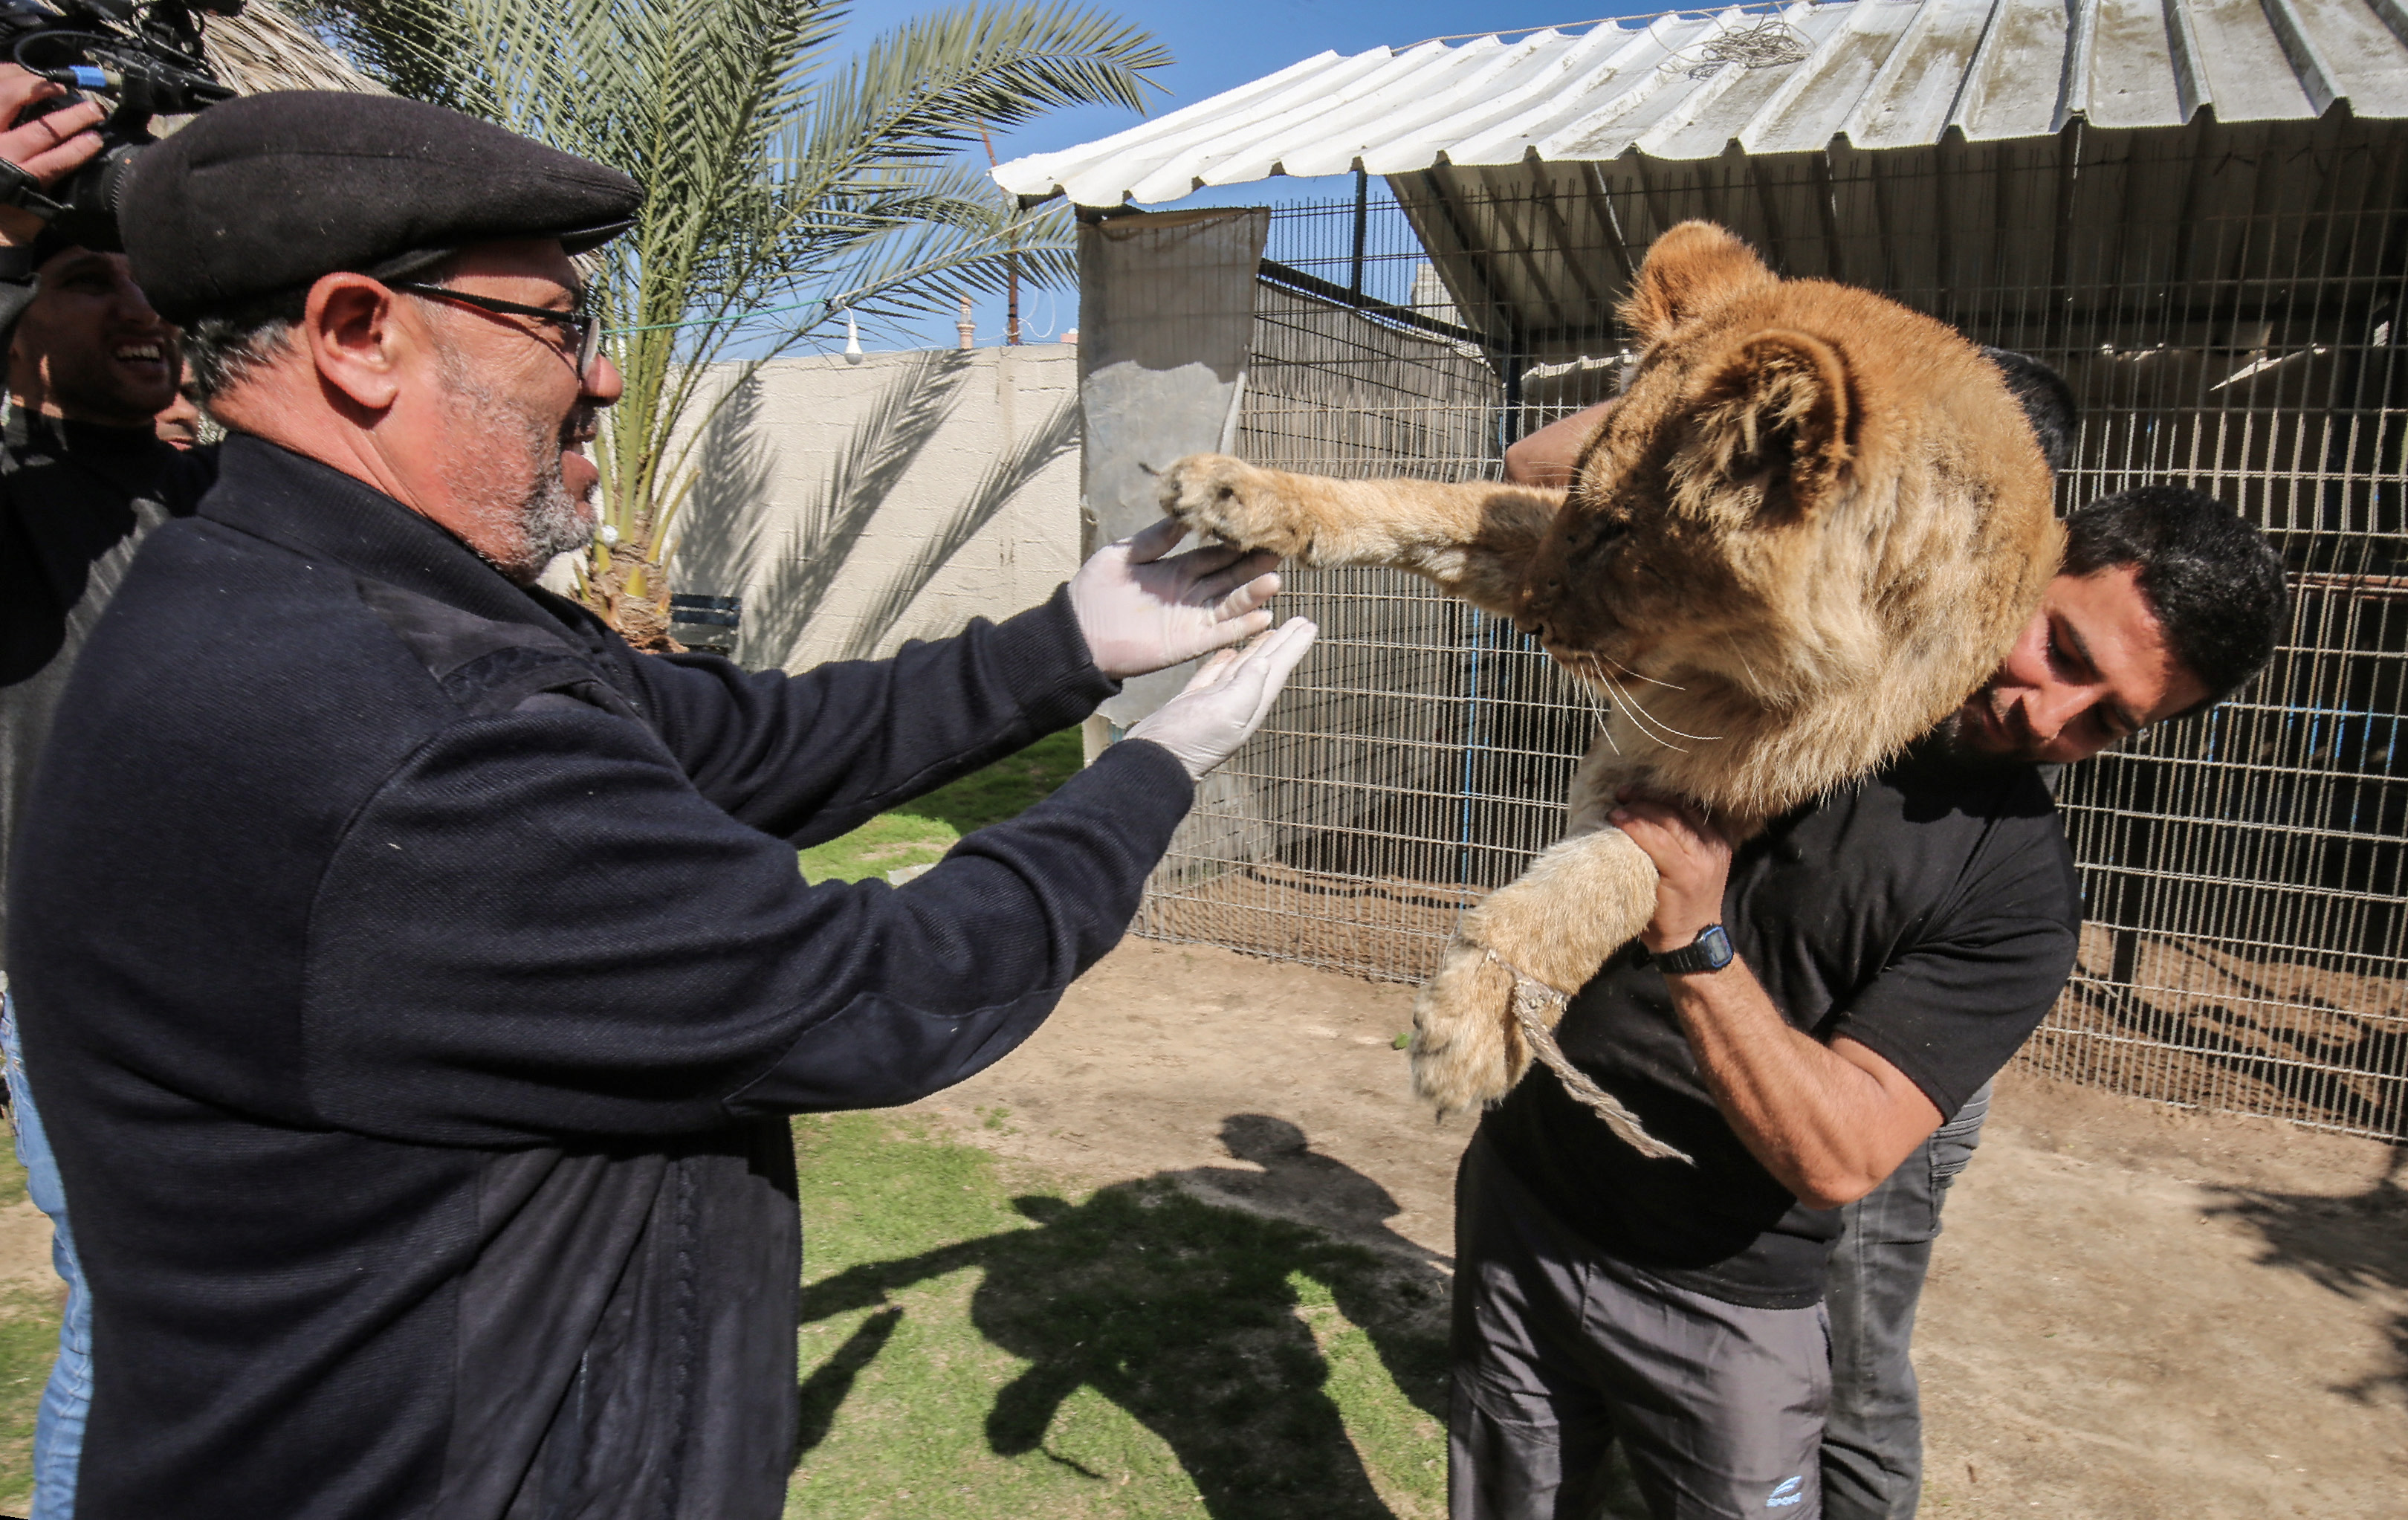 Palestinian veterinarian Fayyaz al-Haddad, reaches for the paw of the lioness 'Falestine' as she is held by another man, at the Rafah Zoo in the southern Gaza Strip on February 12, 2019. - The zoo in the war-battered Palestinian enclave is promoting itself as offering the chance to play with the 14-month-old declawed lioness, which is supposed to be placid enough to meet visitors. It is the latest unconventional animal care practice in Gaza where there is no specialized animal hospital with a few dilapidated zoos competing for business. (Photo by SAID KHATIB / AFP/Getty Images)